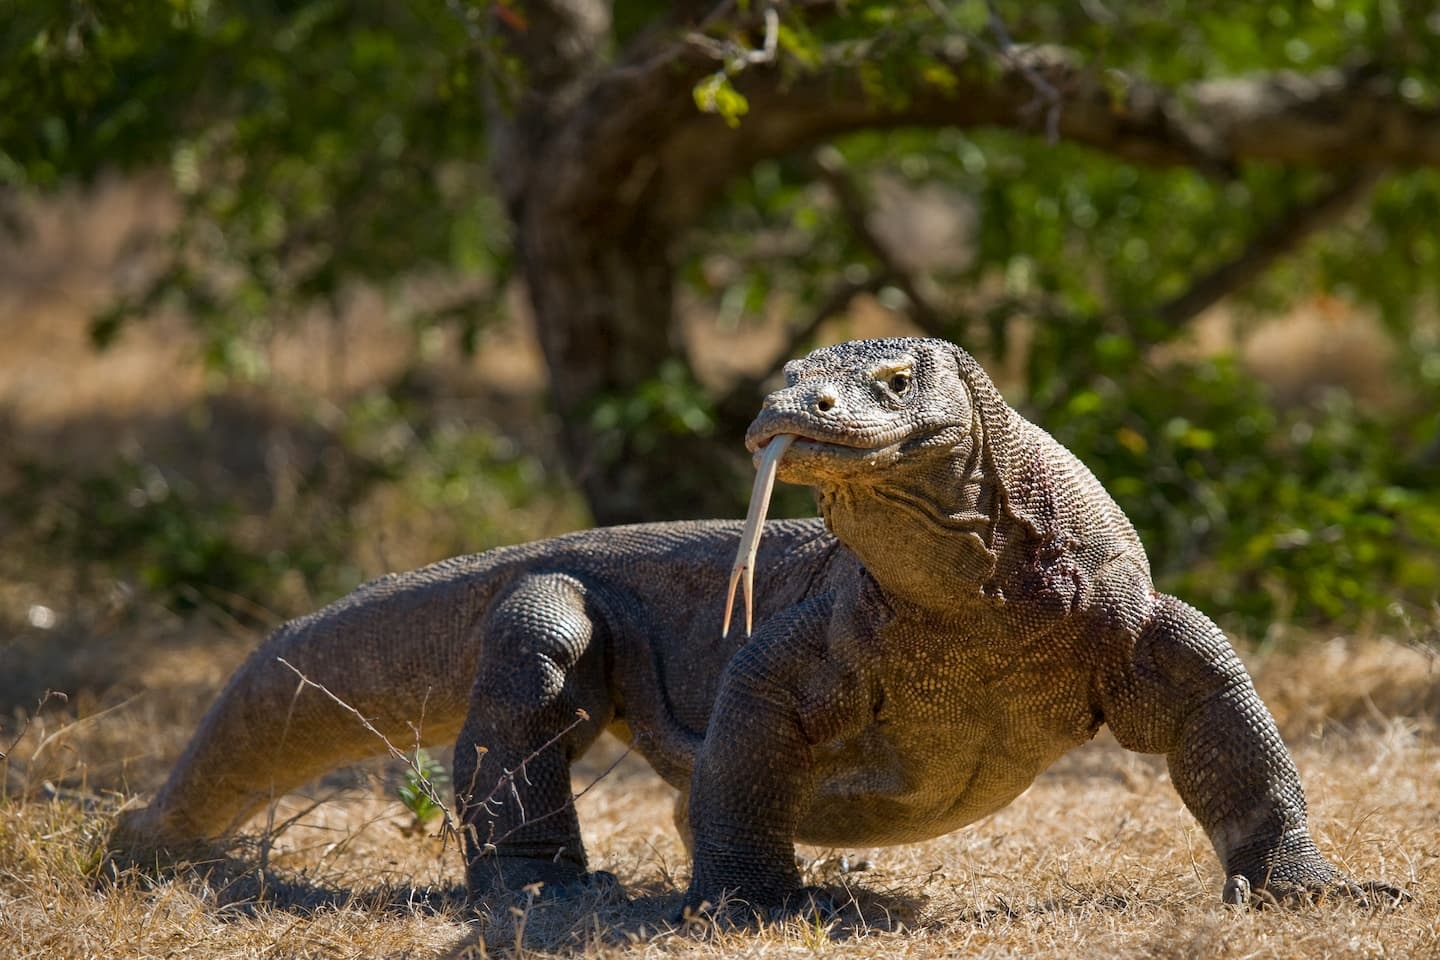 photo of a komodo dragon